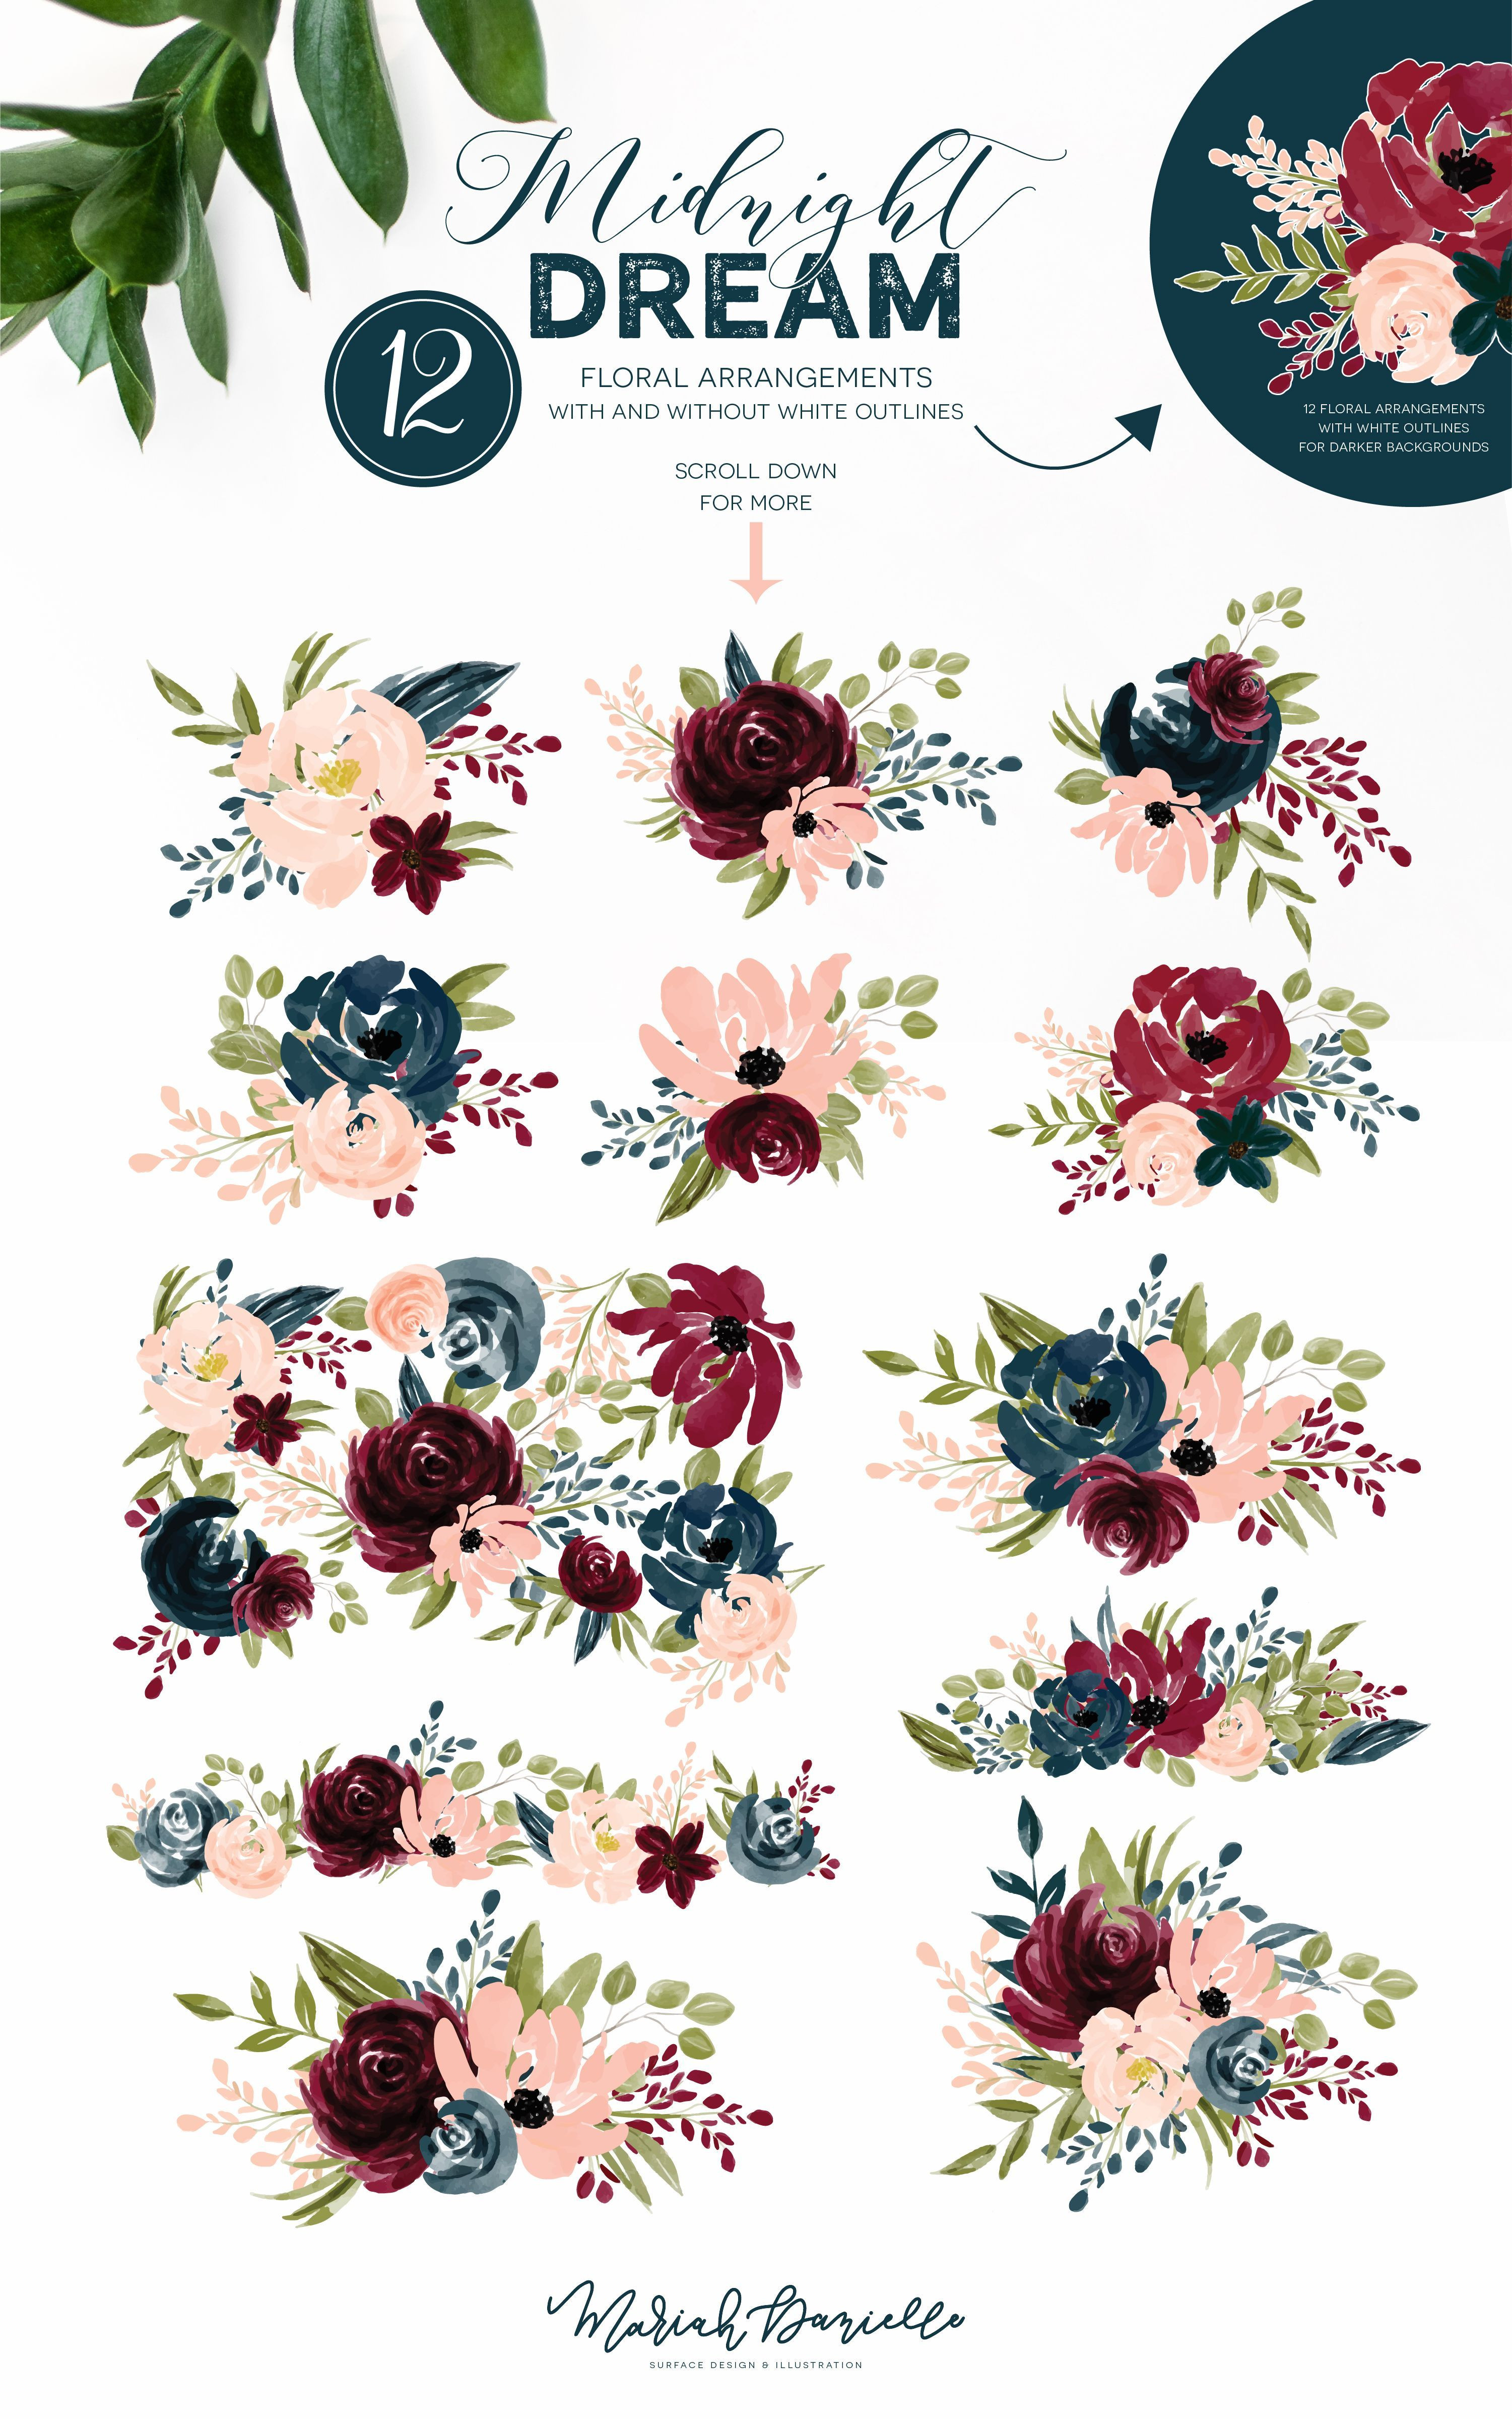 Burgundy & Navy Flower Graphic Set Illustrations Hand Drawn Floral Illustrations